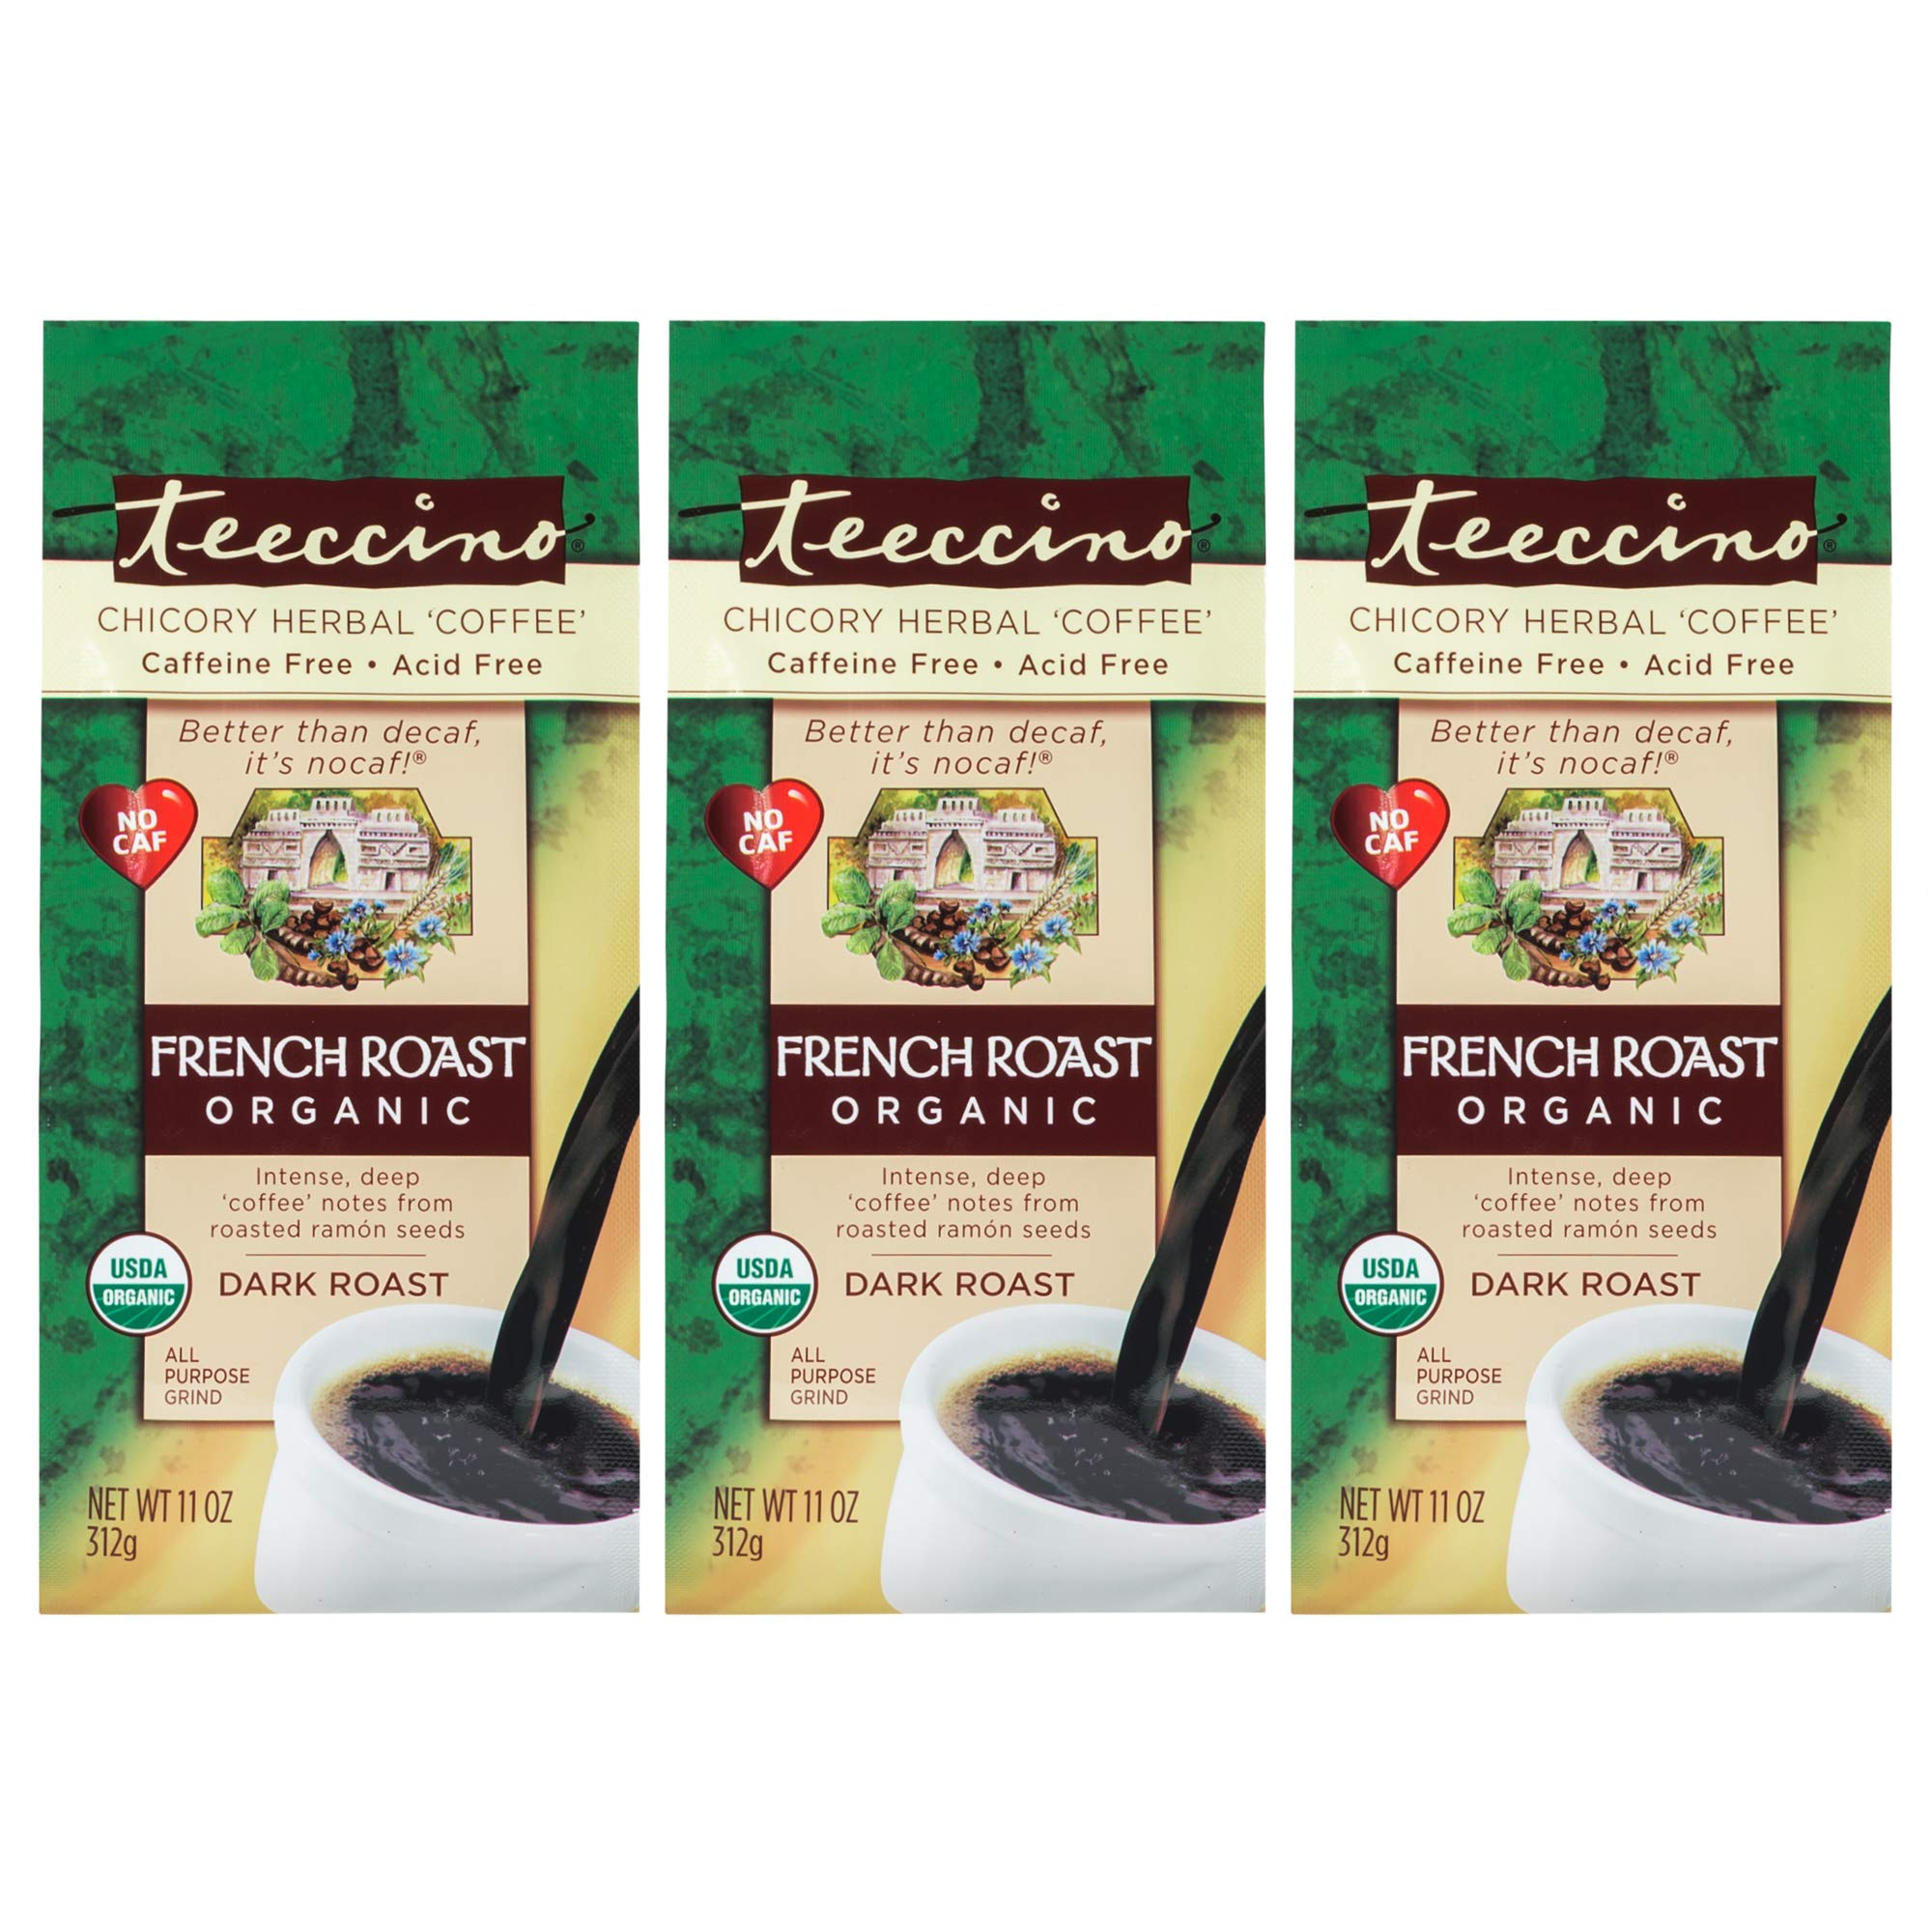 Teeccino French Roast Organic Chicory Herbal Coffee Alternative, Caffeine Free, Acid Free, Coffee Substitute, Prebiotic, 11 Ounce (Pack of 3) by Teeccino